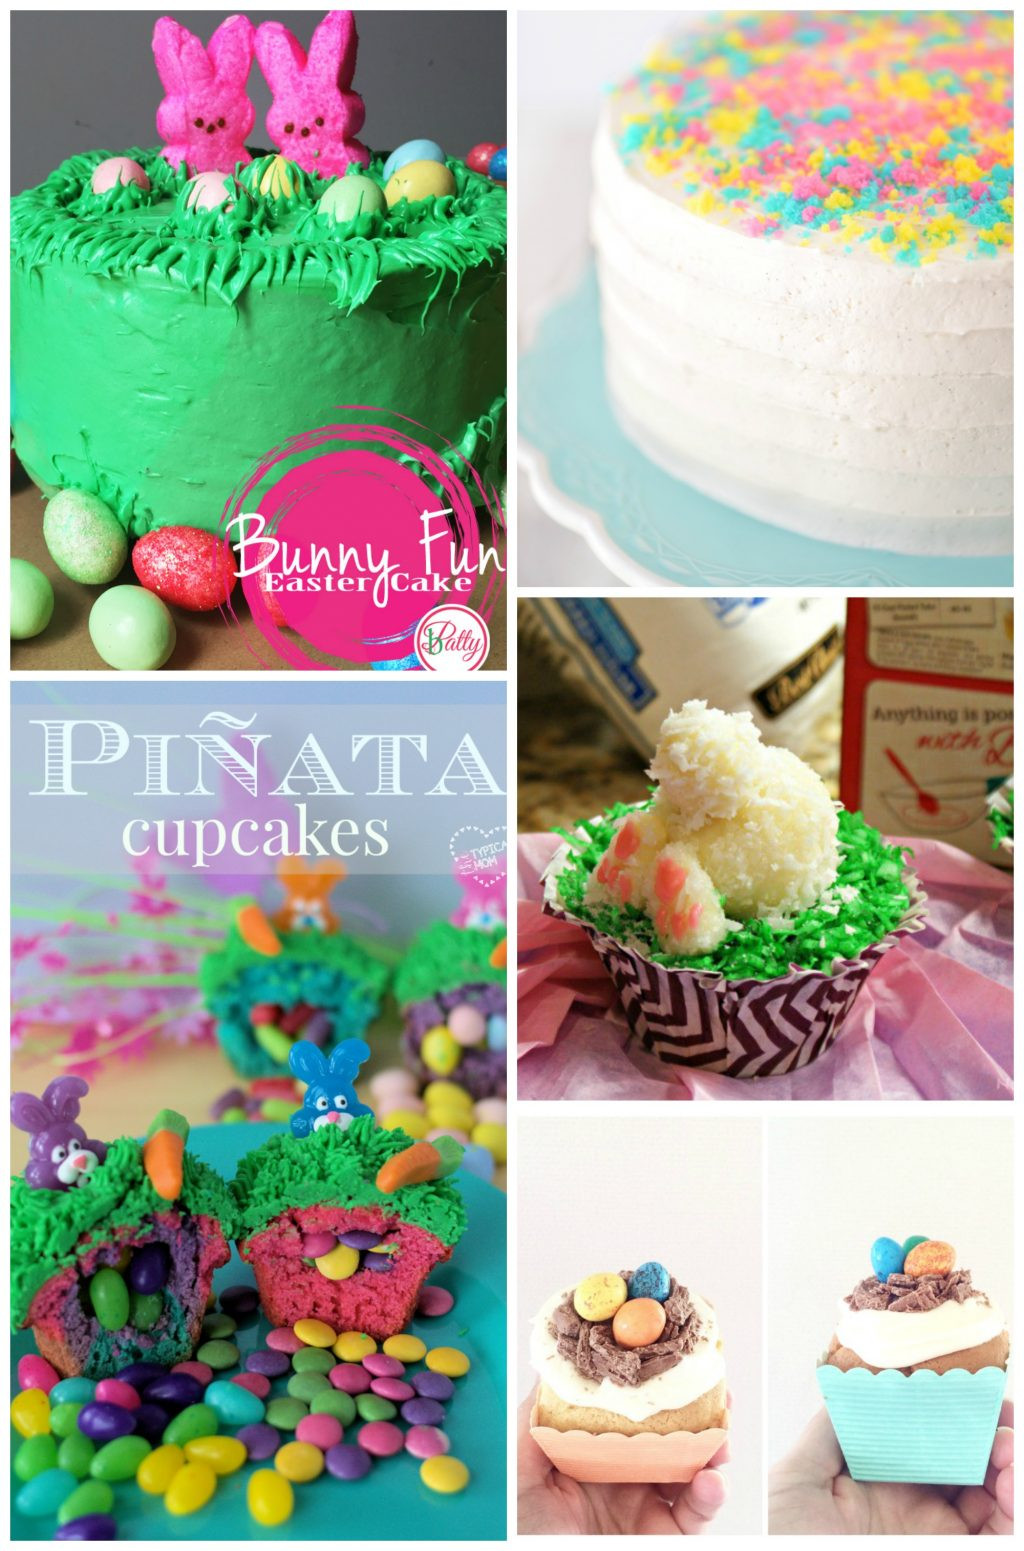 Easter Themed Desserts  Top 10 Easter Themed Desserts Crafty Mama in ME